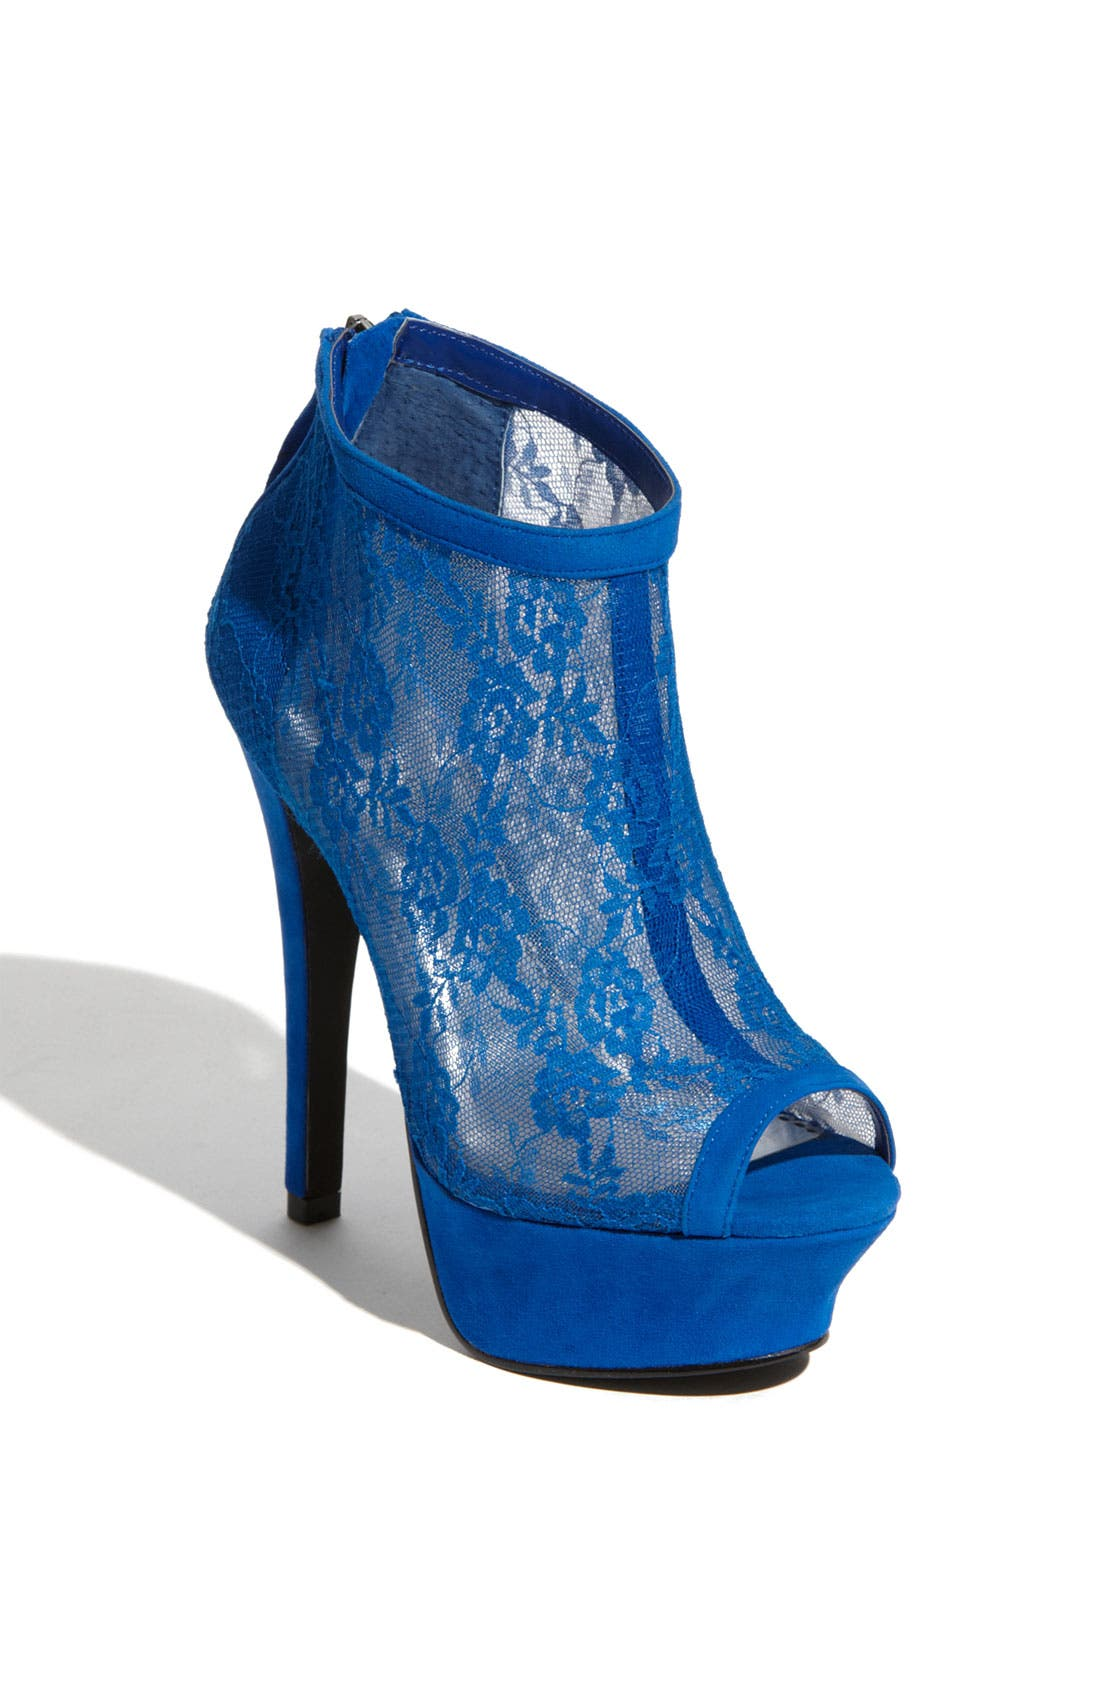 Alternate Image 1 Selected - bebe 'Olivia' Lace Bootie